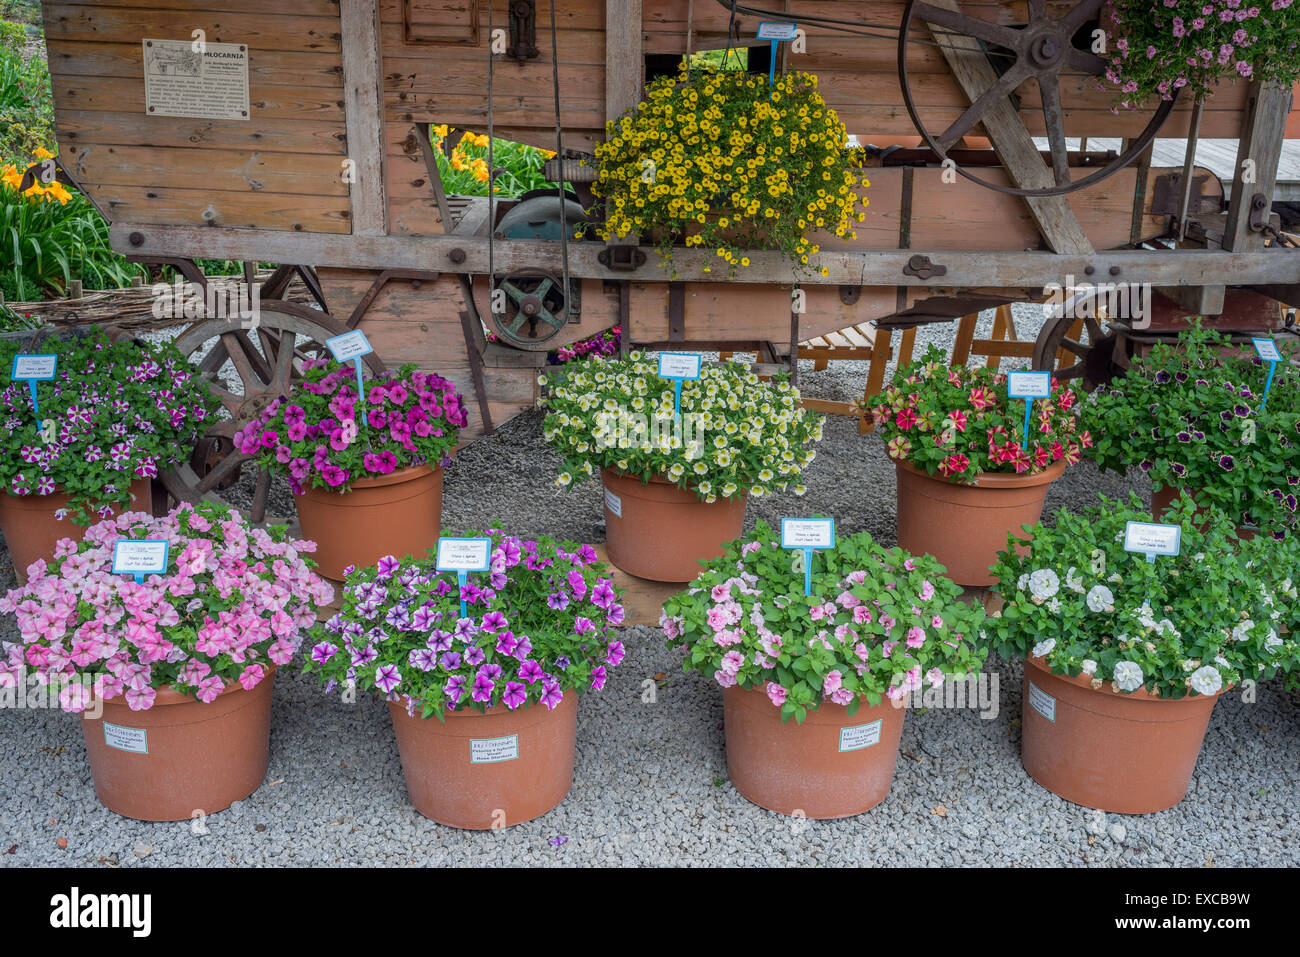 Arrangement Of Flower Pots High Resolution Stock Photography And Images Alamy